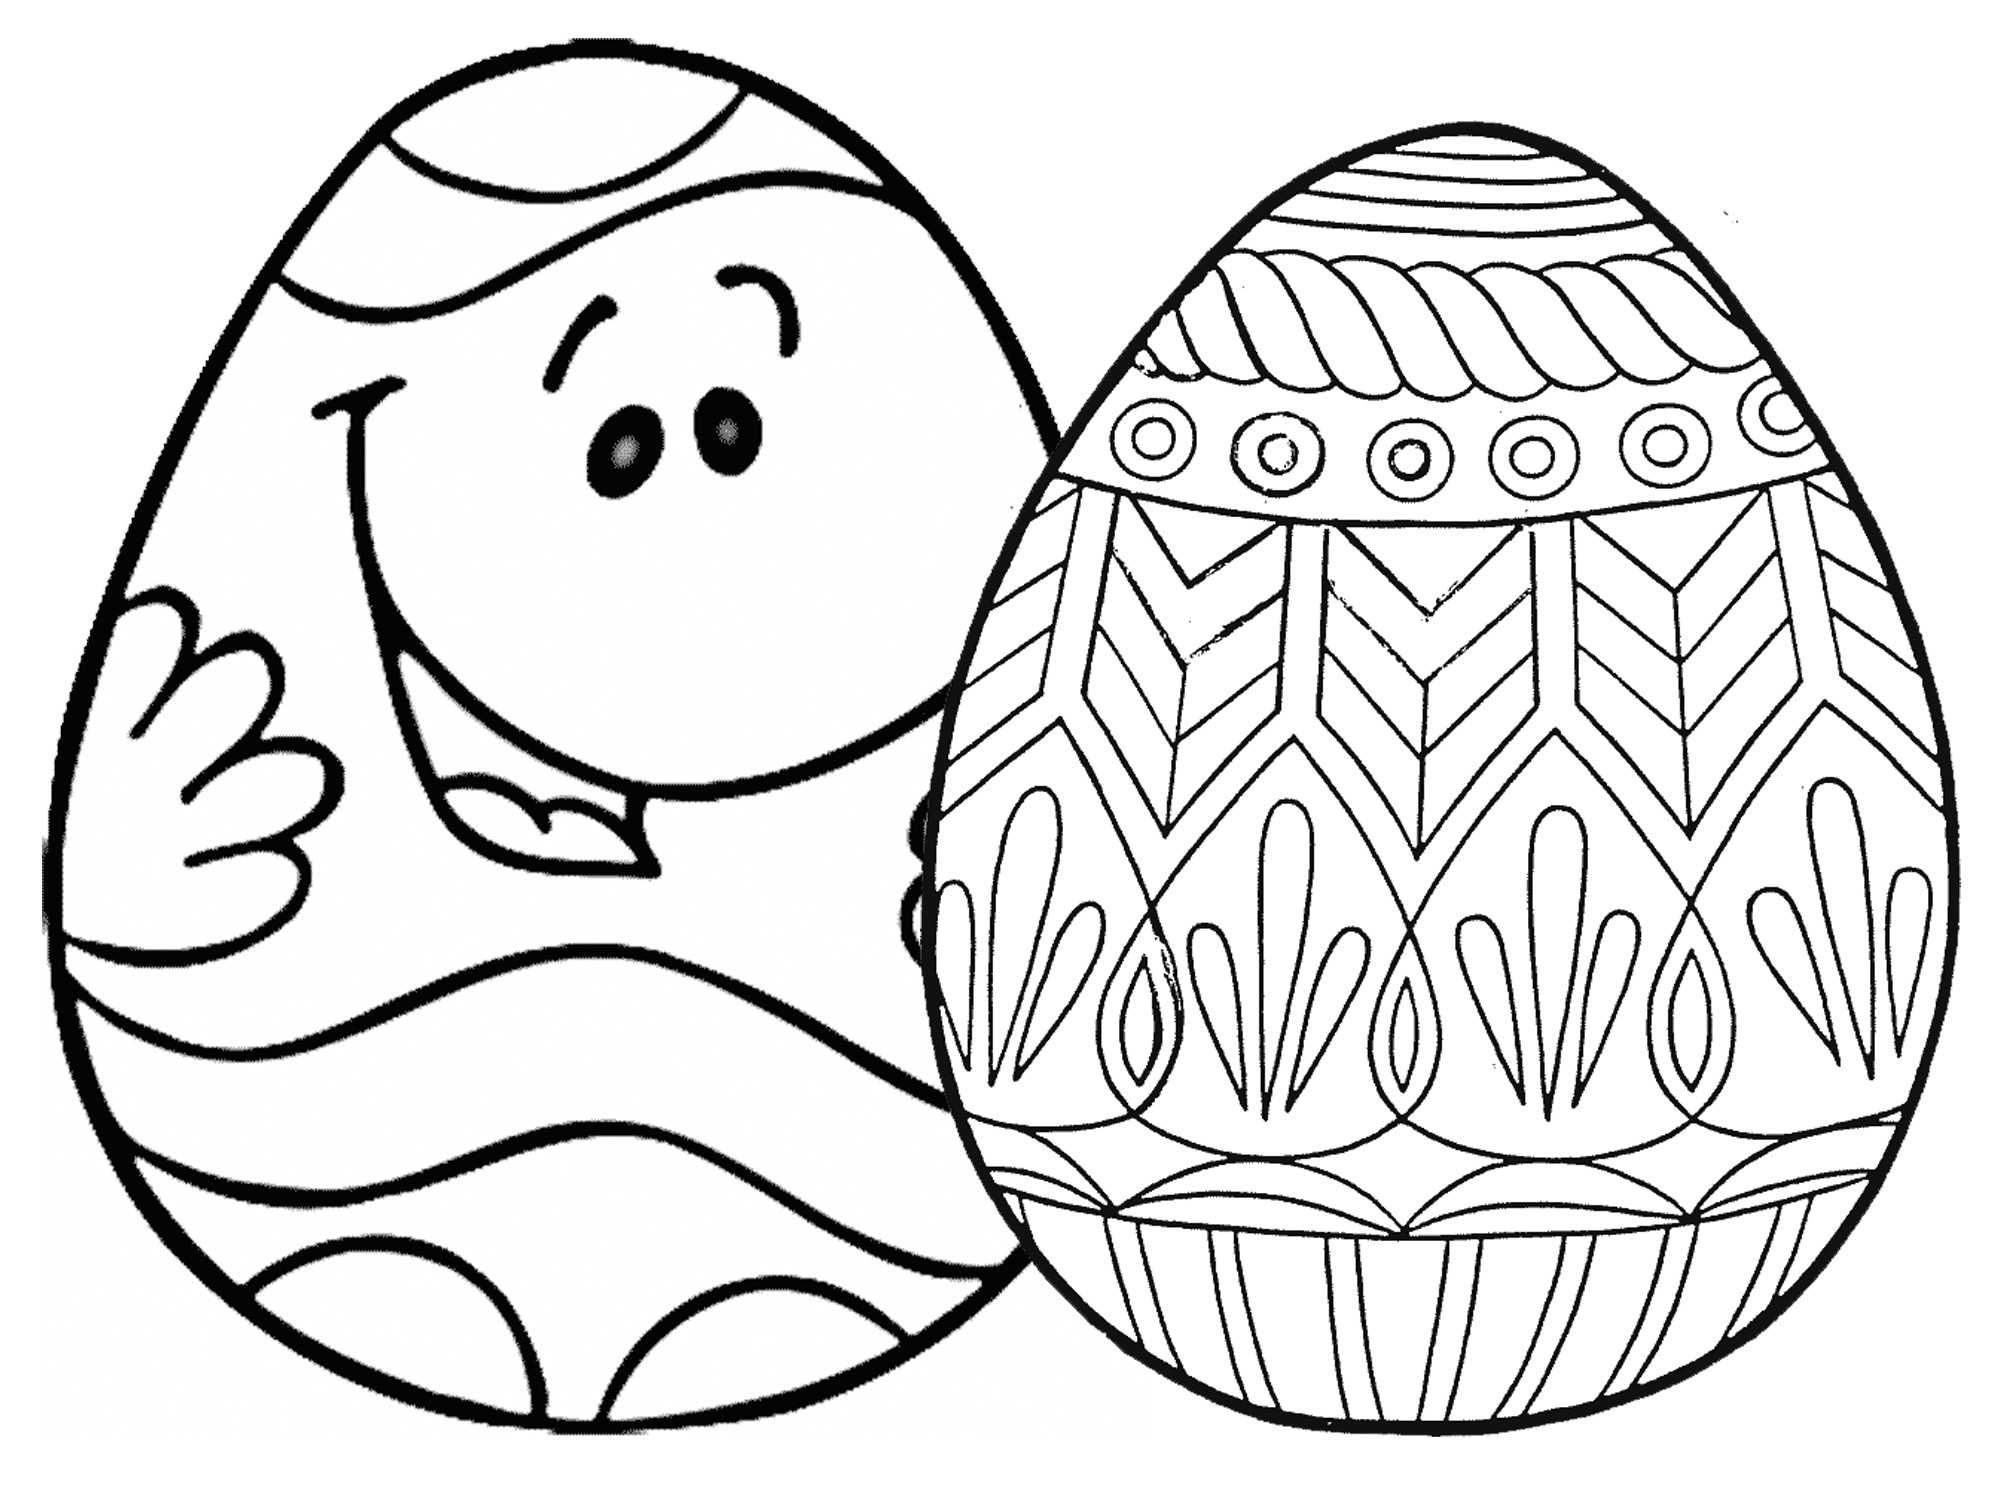 Best ideas about Easter Egg Free Coloring Sheets . Save or Pin 7 Places for Free Printable Easter Egg Coloring Pages Now.